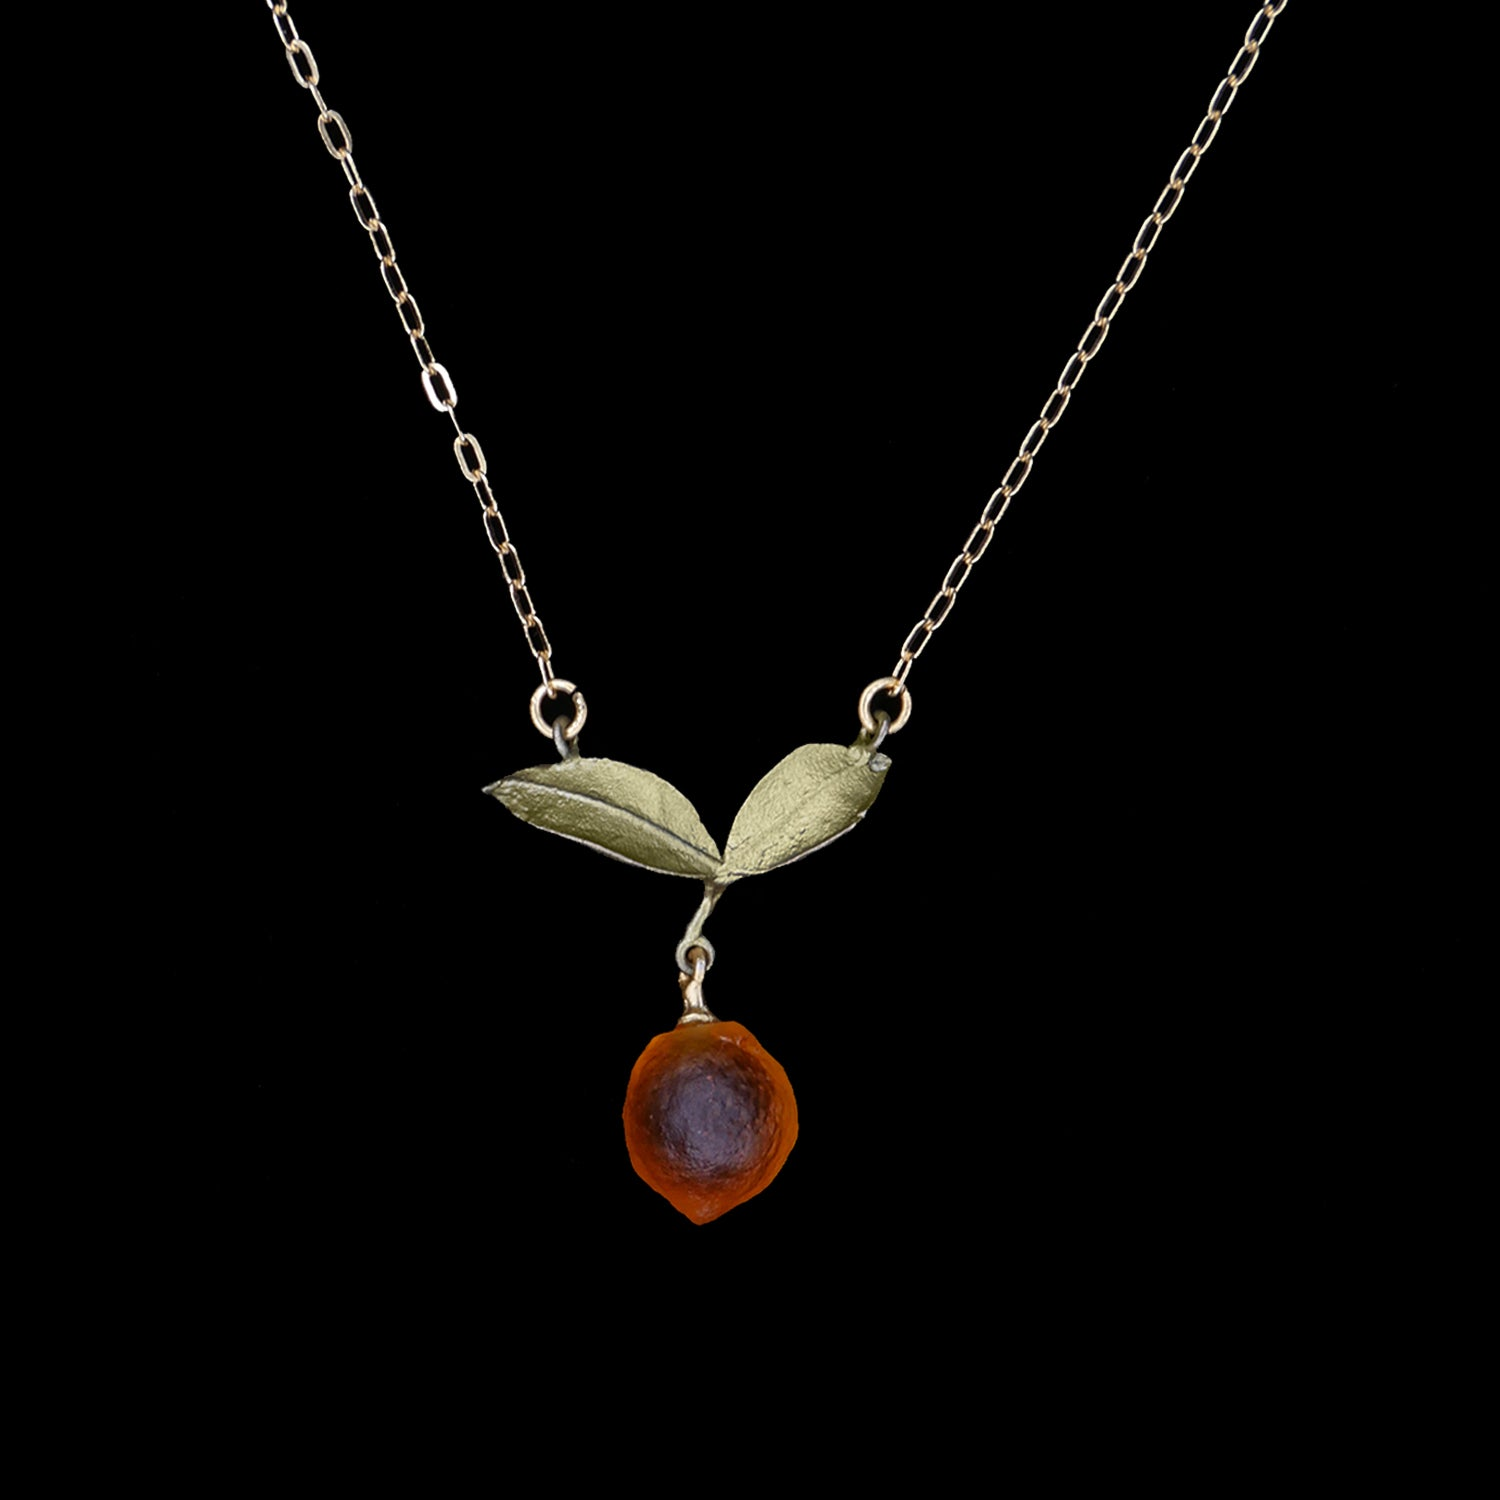 Orange Pendant - Dainty Drop